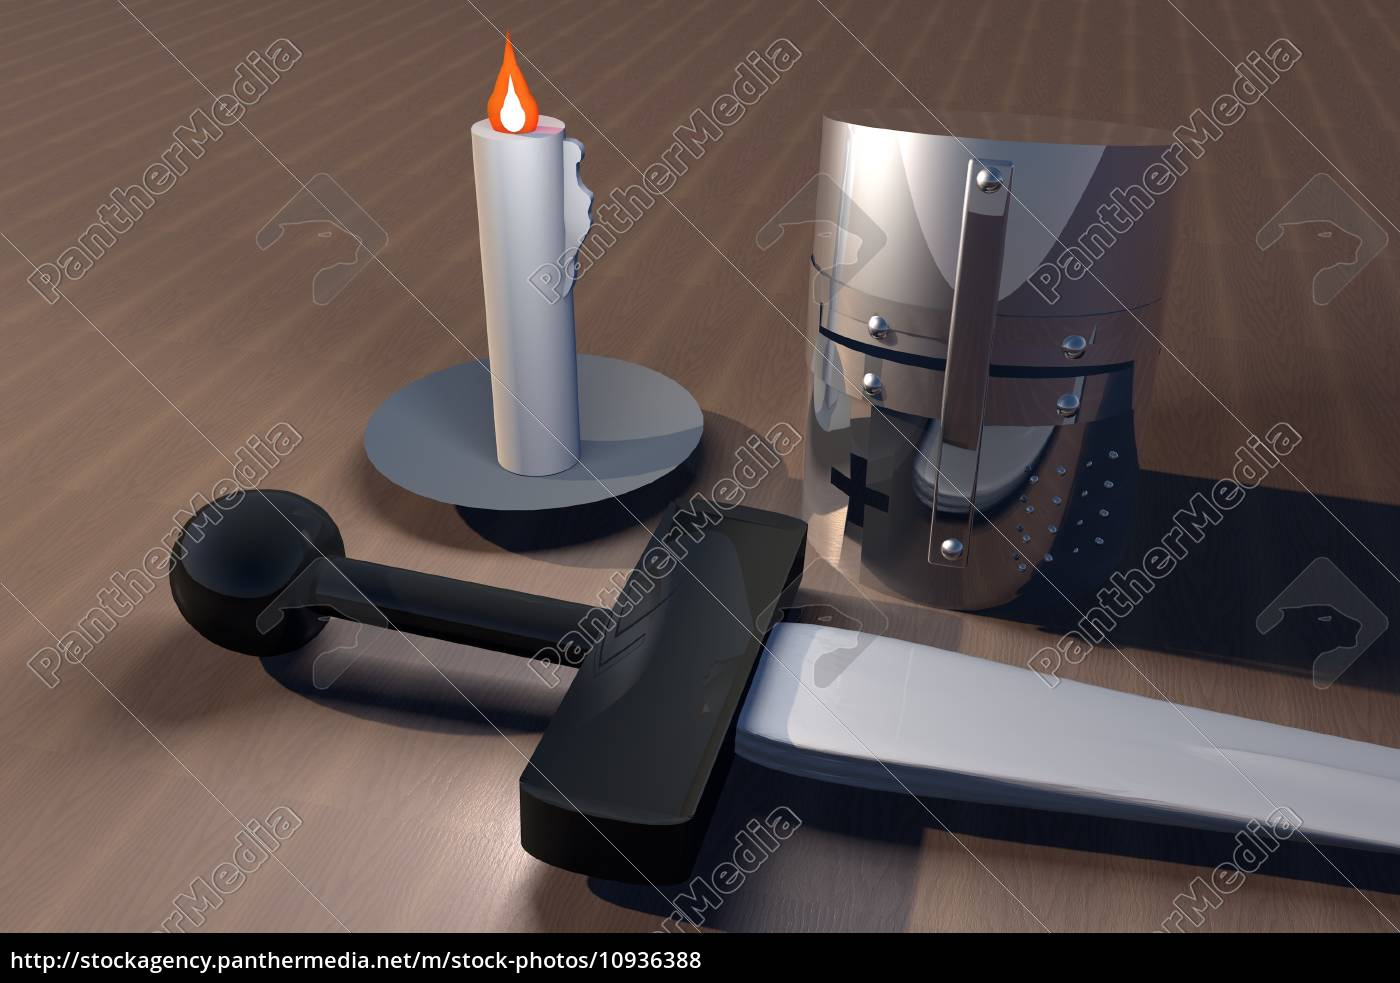 helm, , sword, and, candle - 10936388